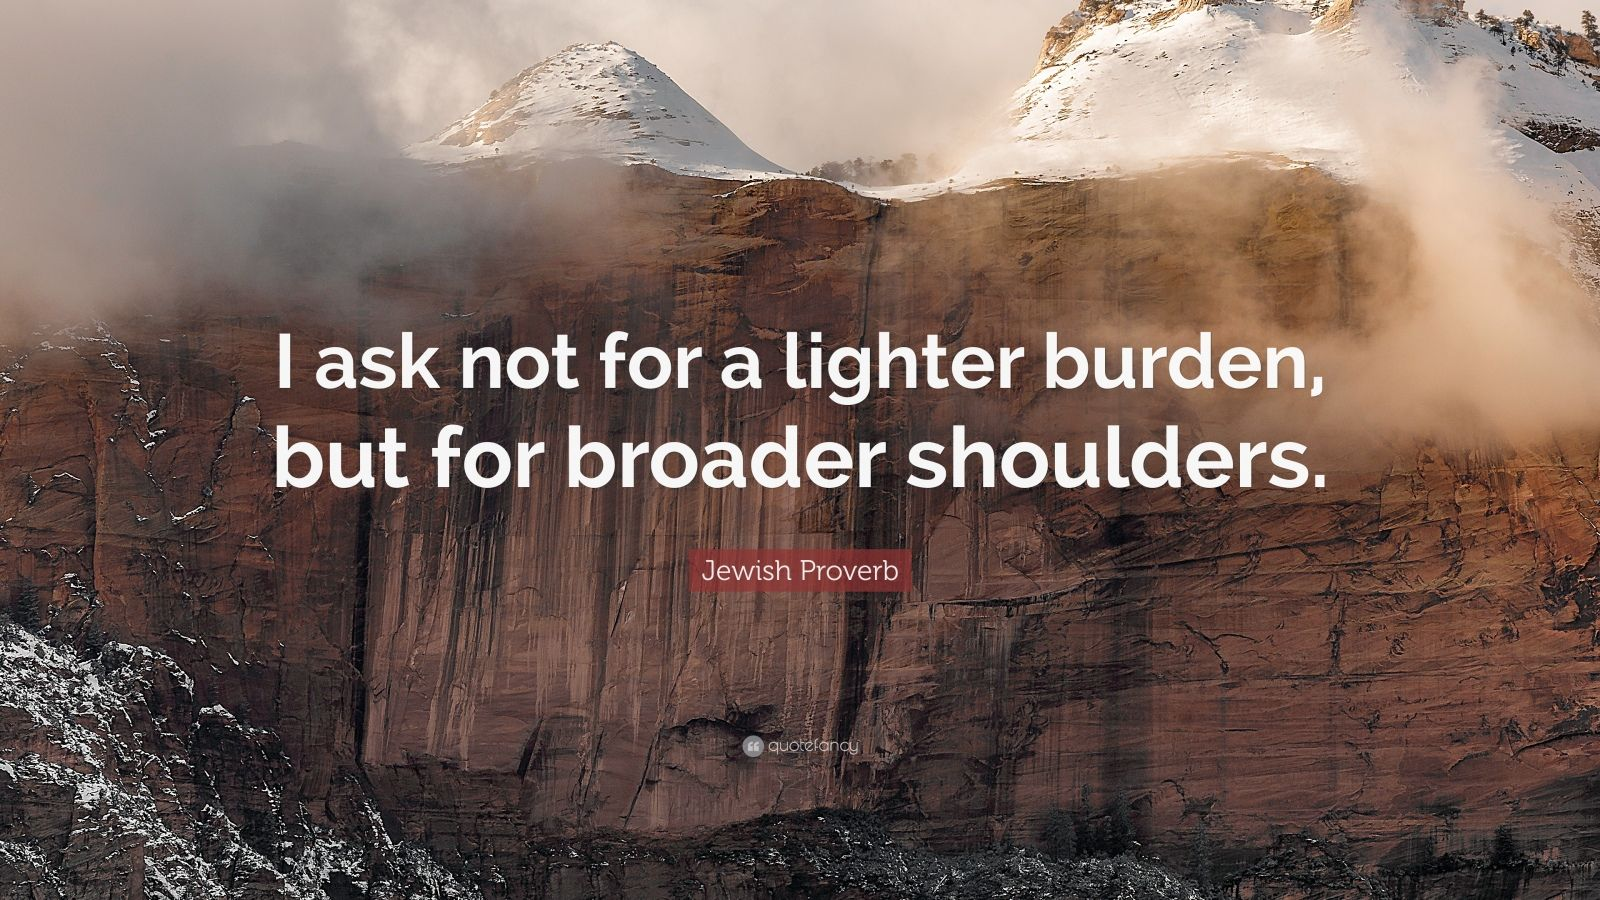 Beautiful Wallpapers With Inspirational Quotes Jewish Proverb Quote I Ask Not For A Lighter Burden But